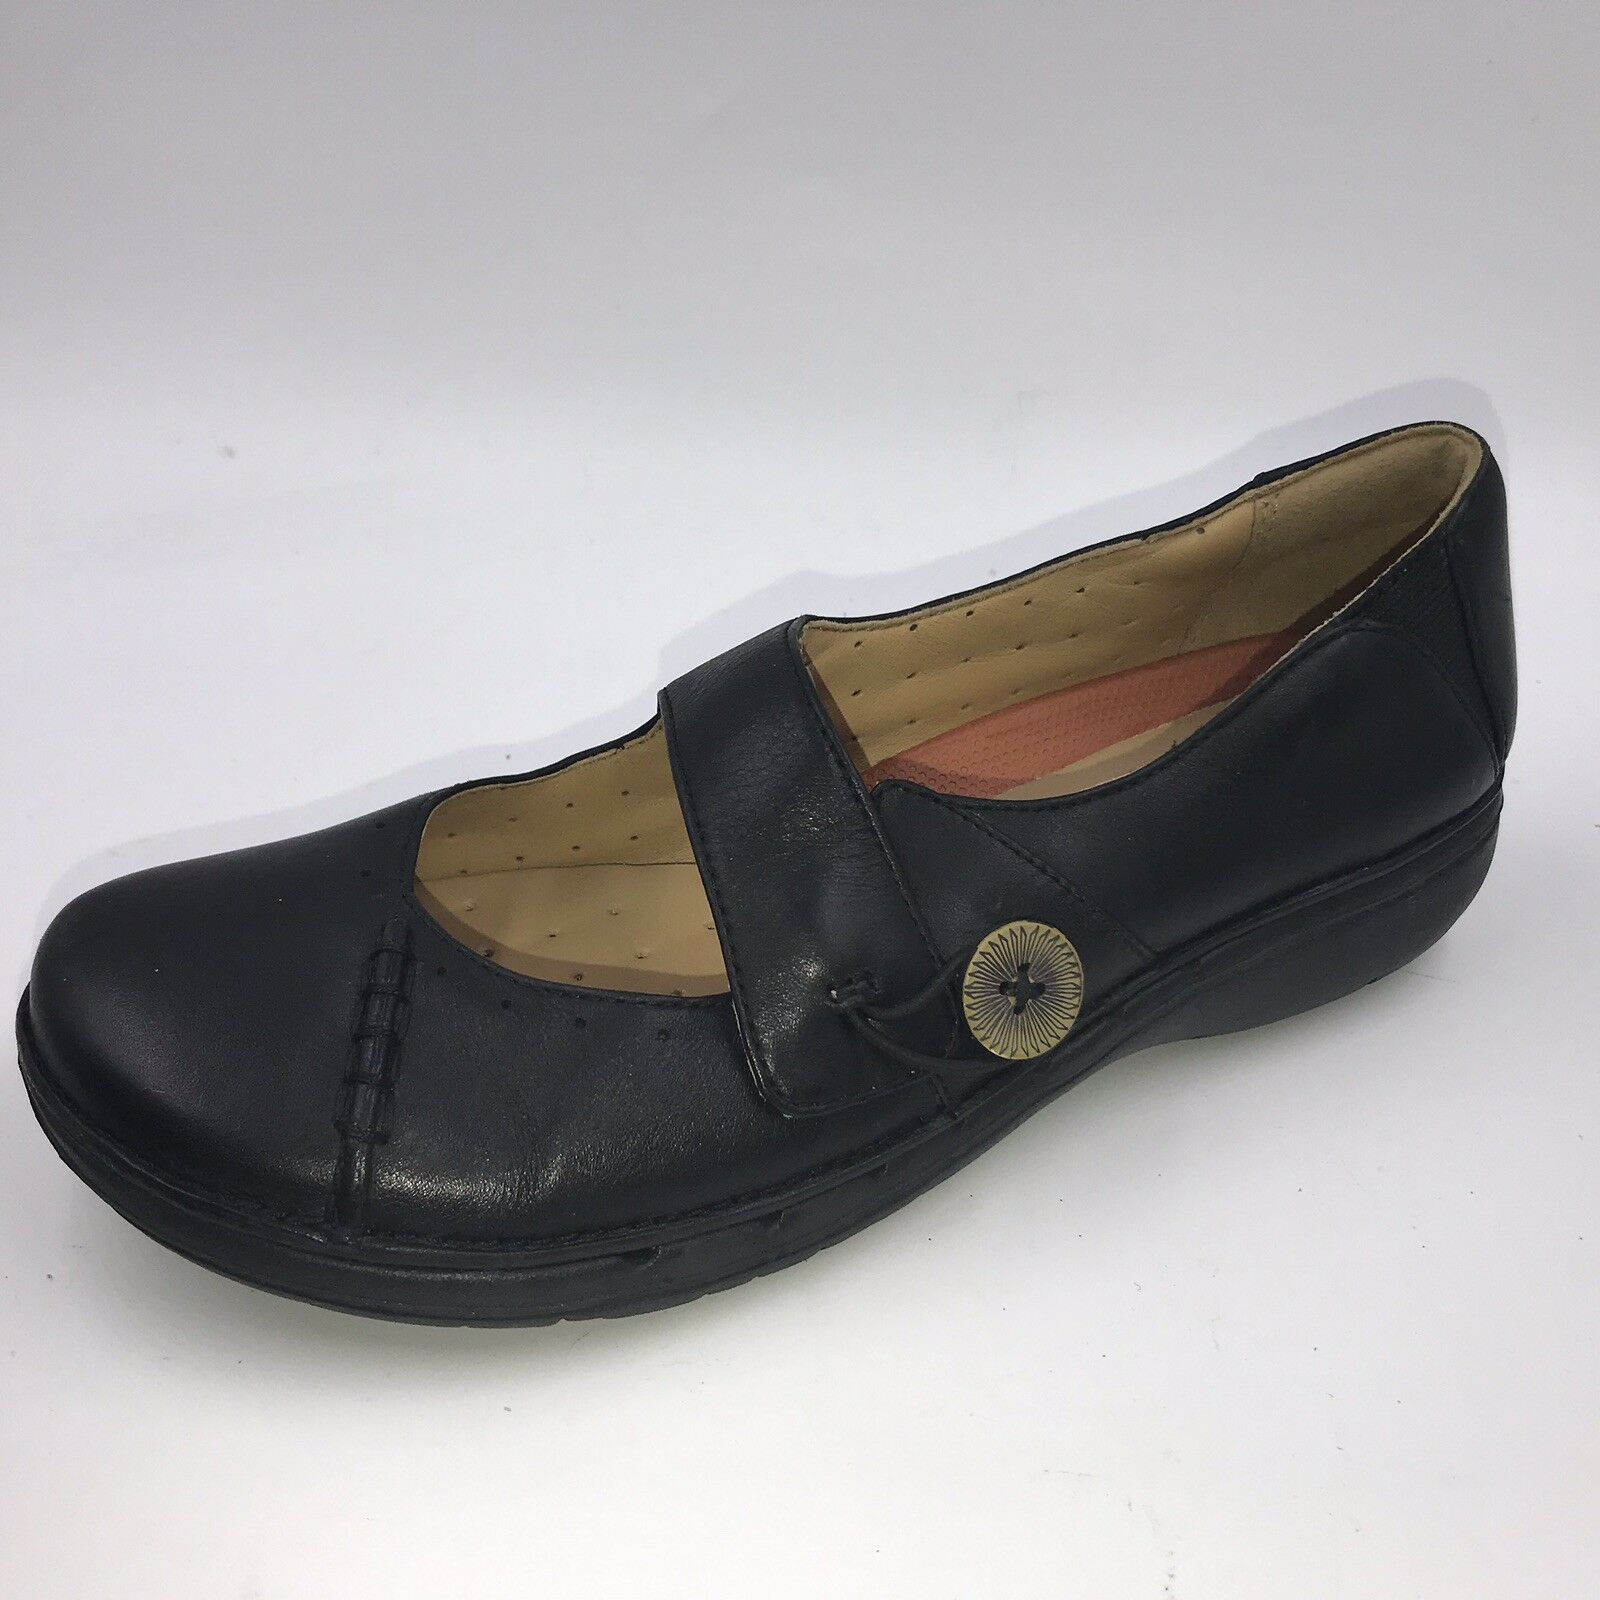 Clarks aartisan uunstructurouge SZ 4.5 37.5 noir Mary janes chaussures pour femme